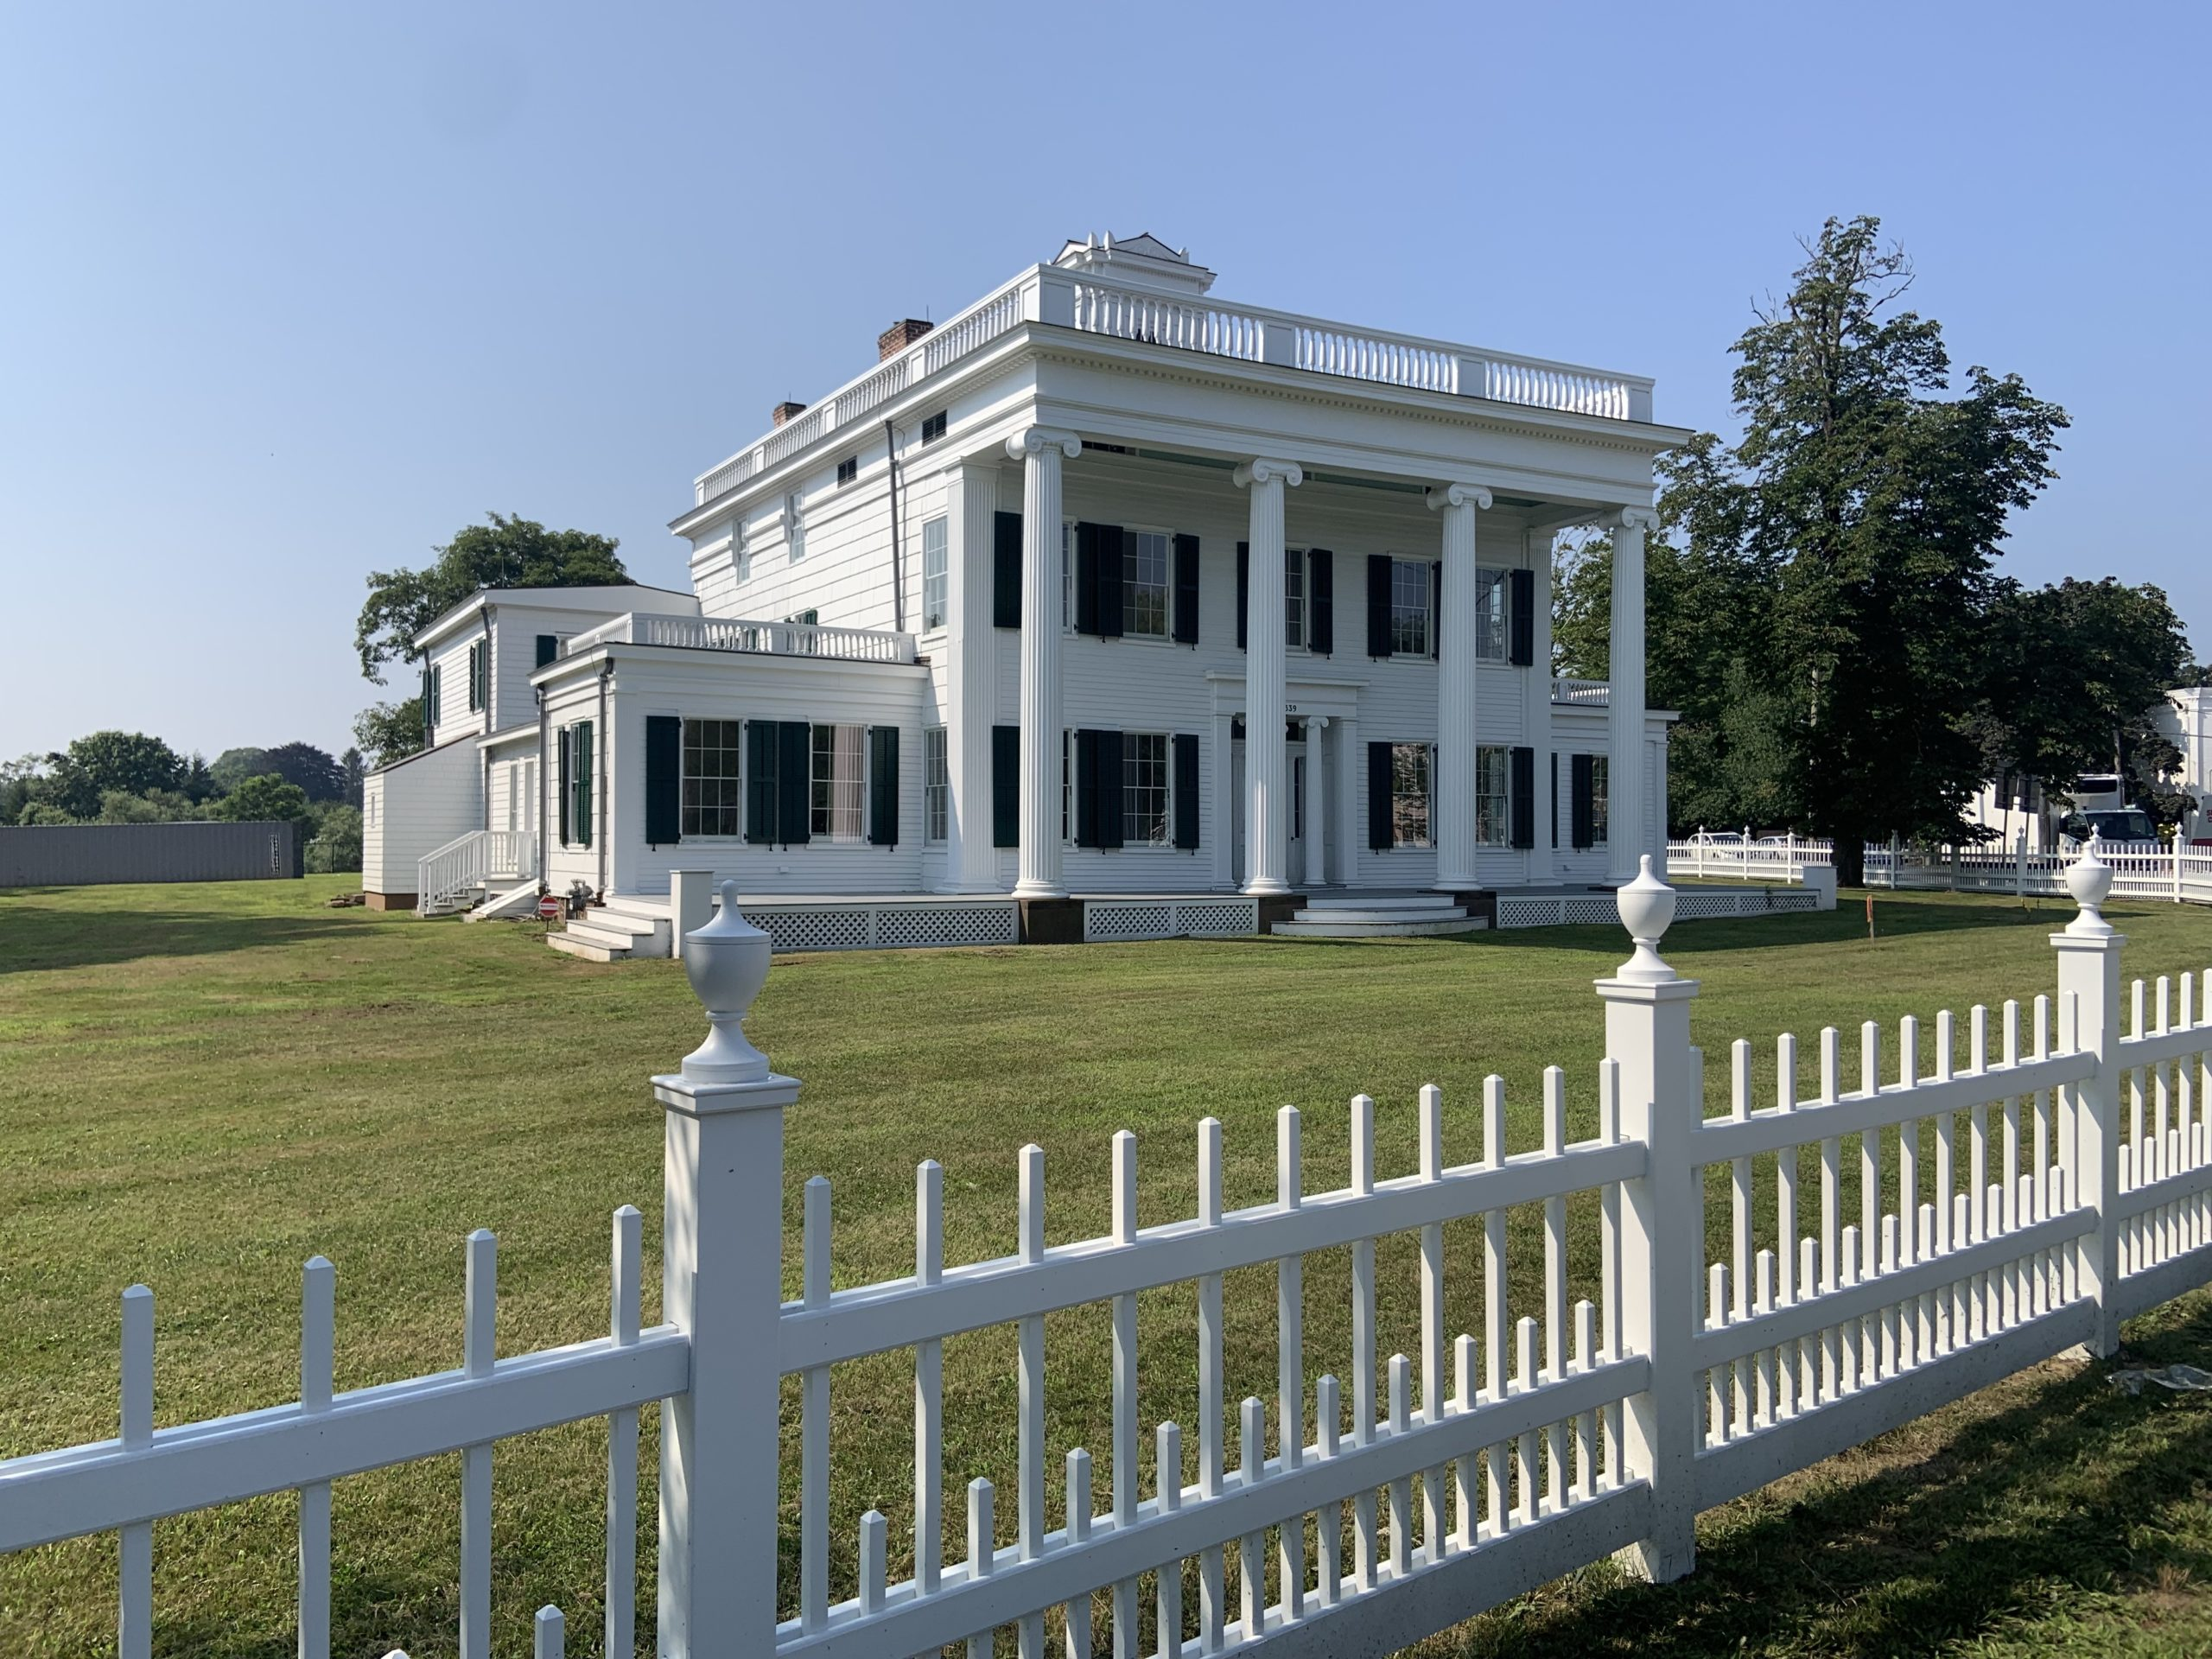 The Nathaniel Rogers House, the new home of the Bridgehampton Museum, as seen from Montauk Highway. STEPHEN J. KOTZ